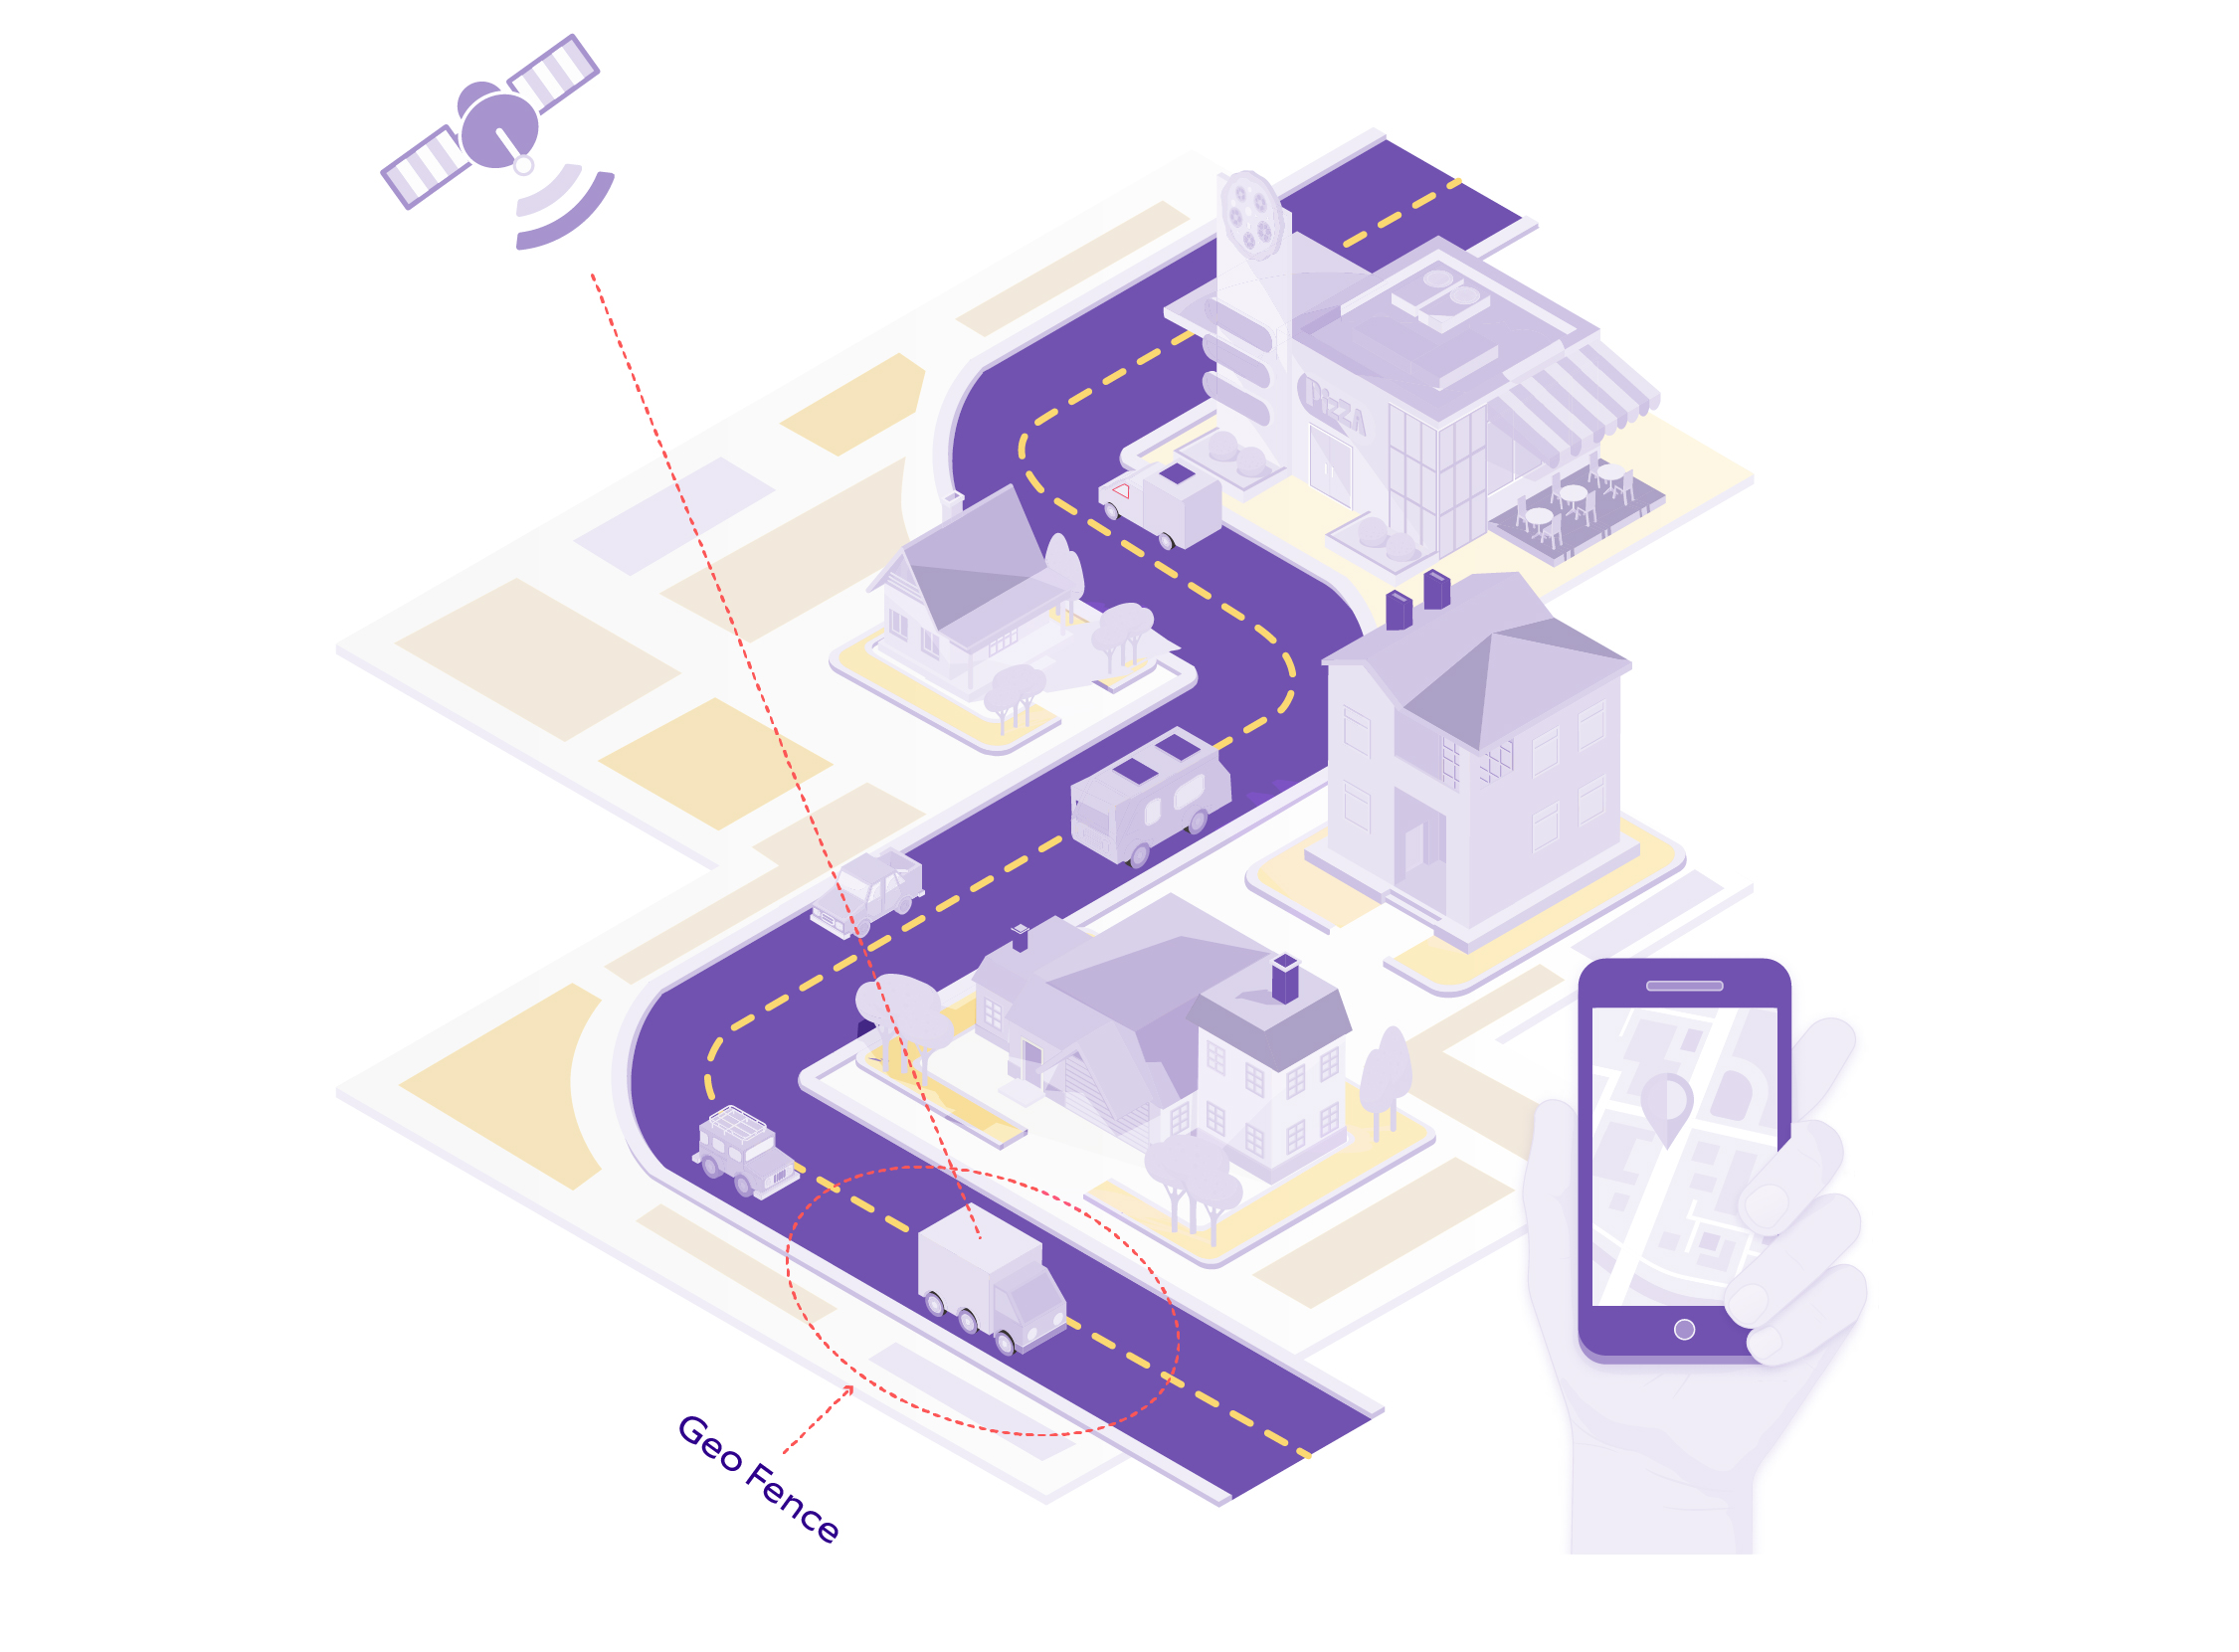 An illustration depicting how geofencing technology works